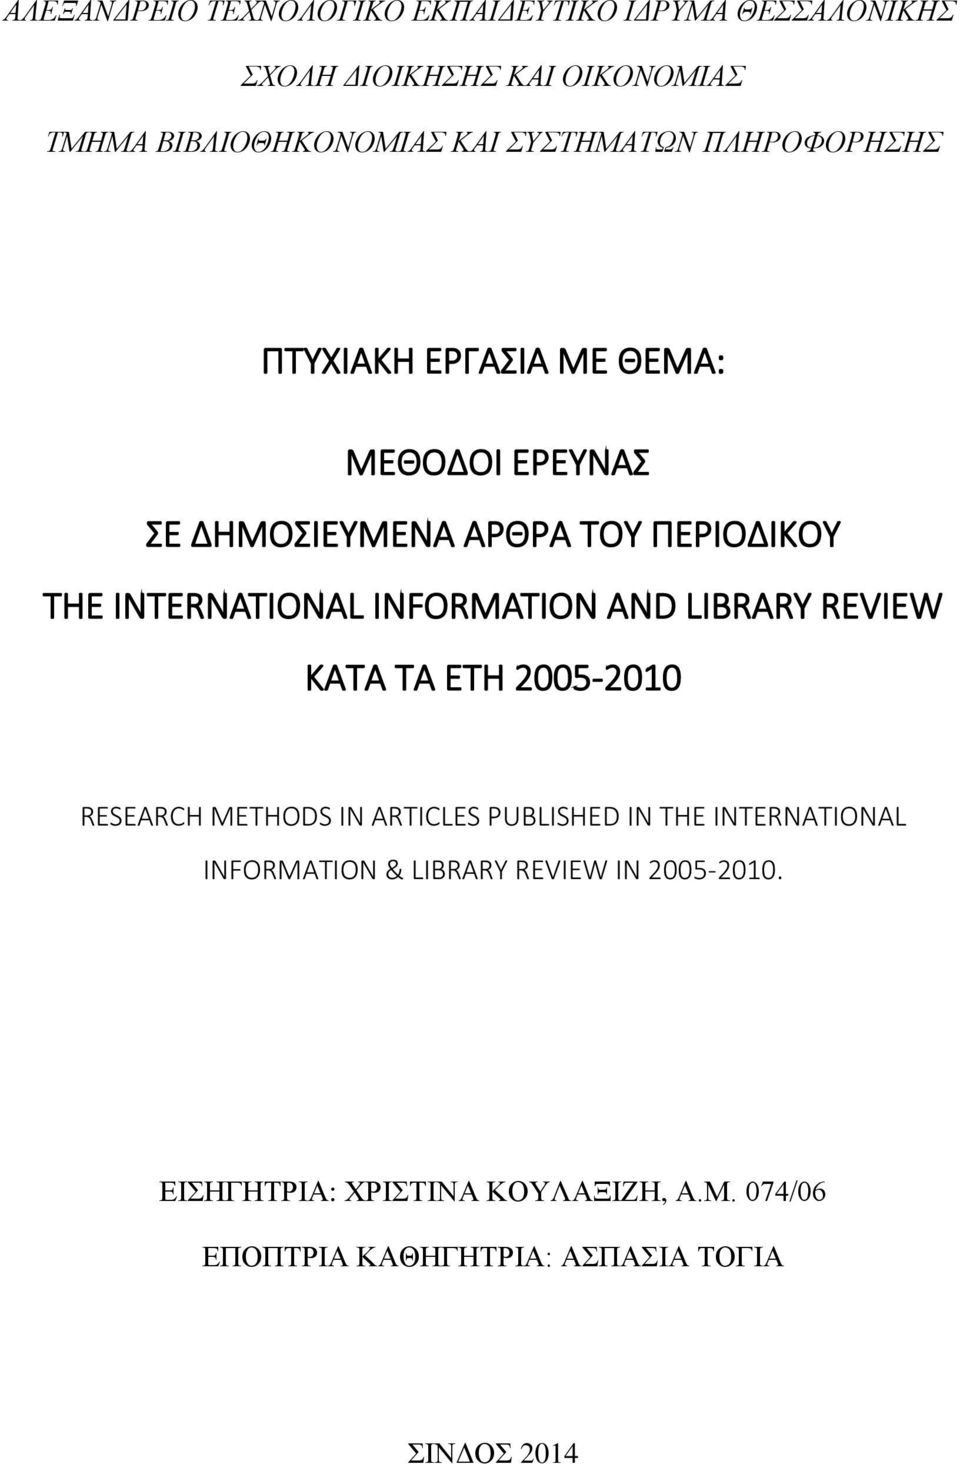 INFORMATION AND LIBRARY REVIEW ΚΑΤΑ ΤΑ ΕΤΗ 2005-2010 RESEARCH METHODS IN ARTICLES PUBLISHED IN THE INTERNATIONAL